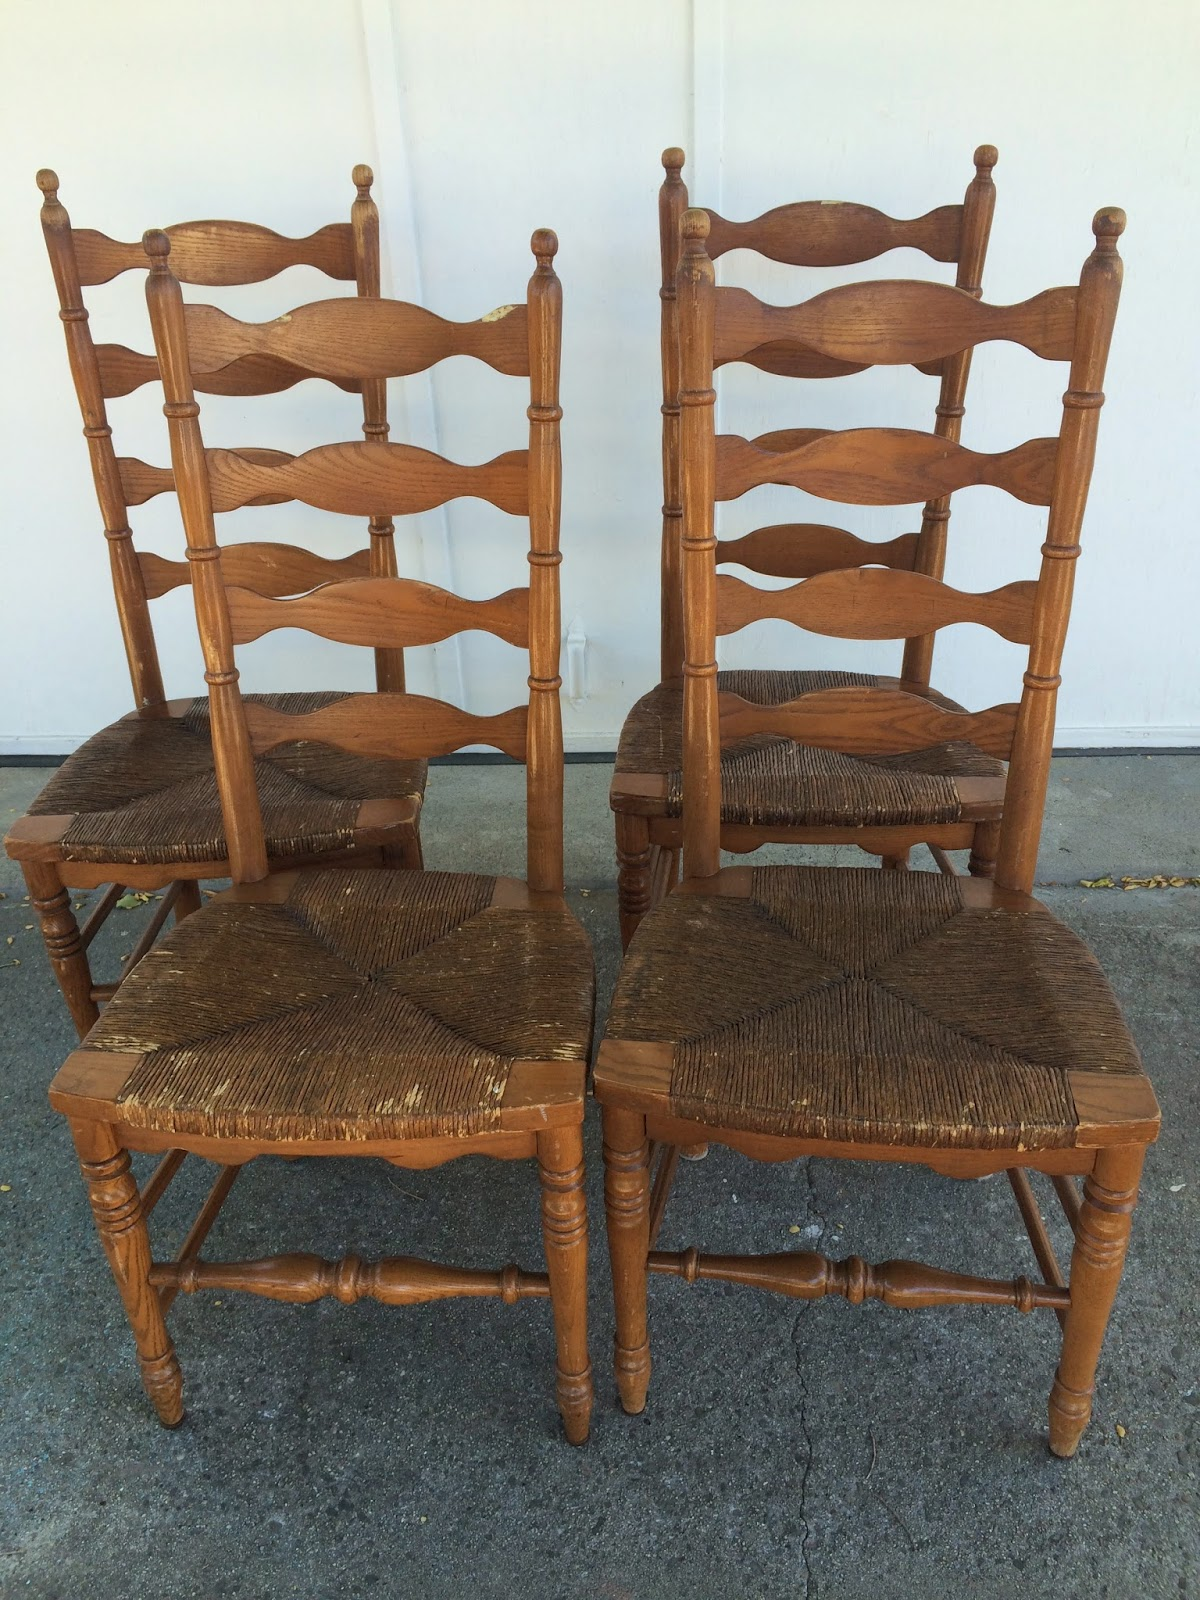 Perfect 4 Ladder Back Chairs With Rush Seats